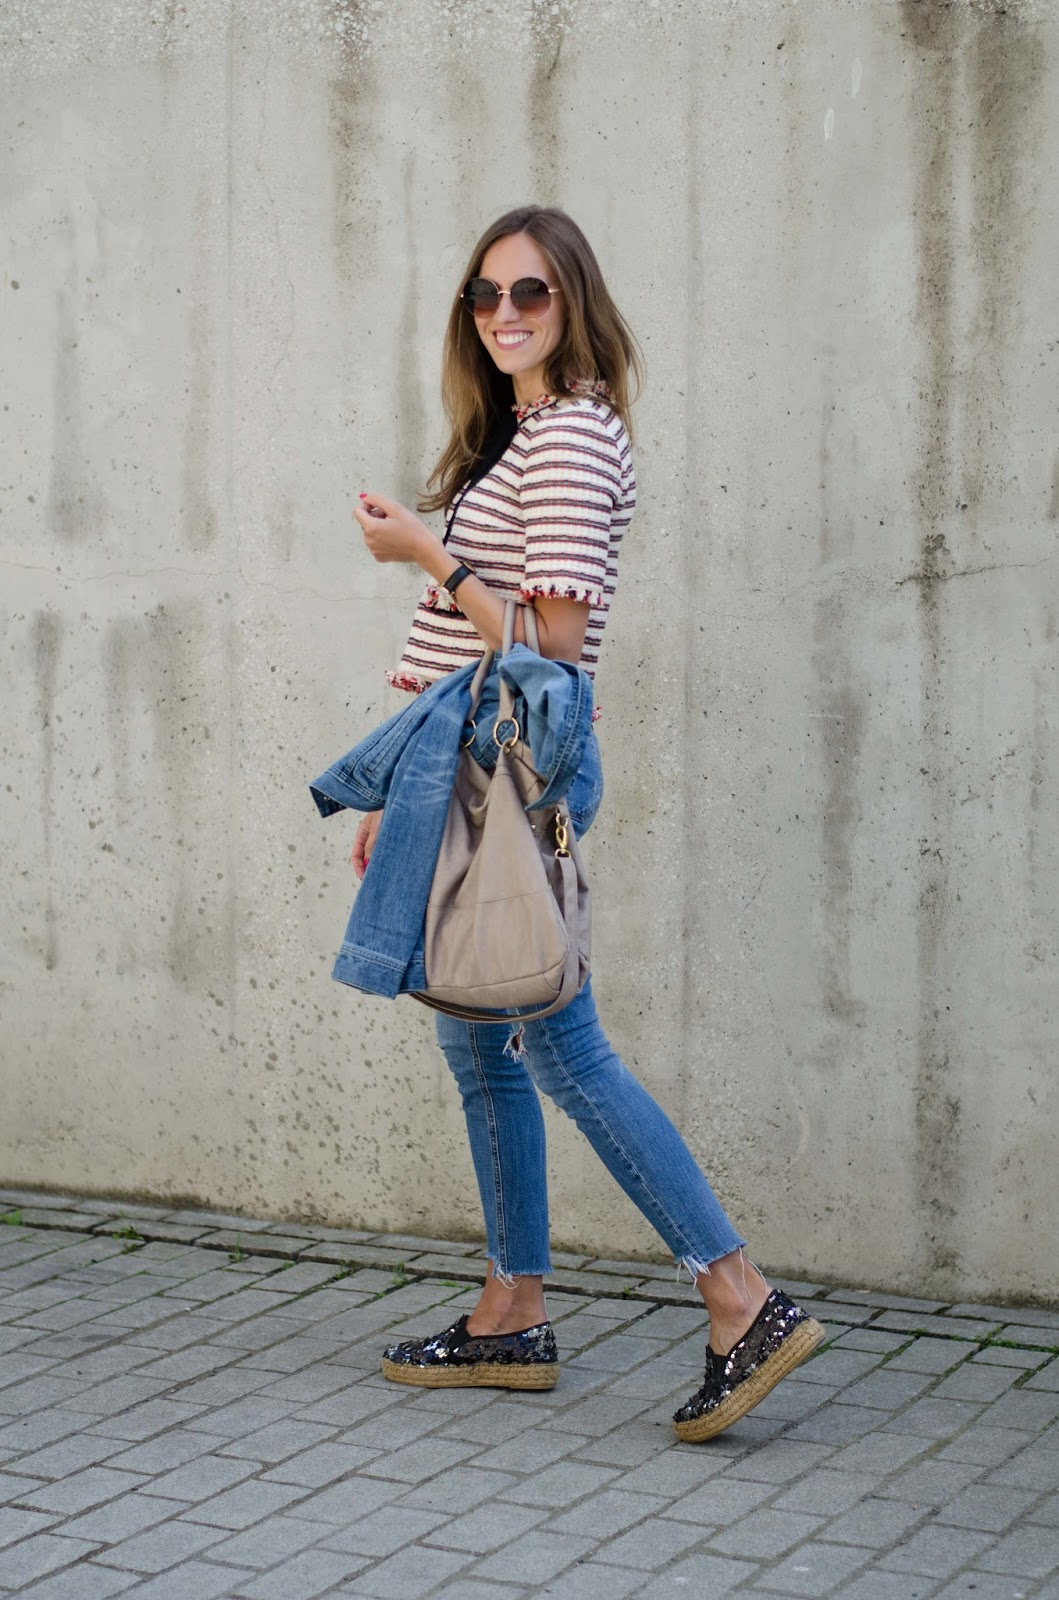 kristjaana mere zara striped top frayed jeans sequin espadrilles outfit